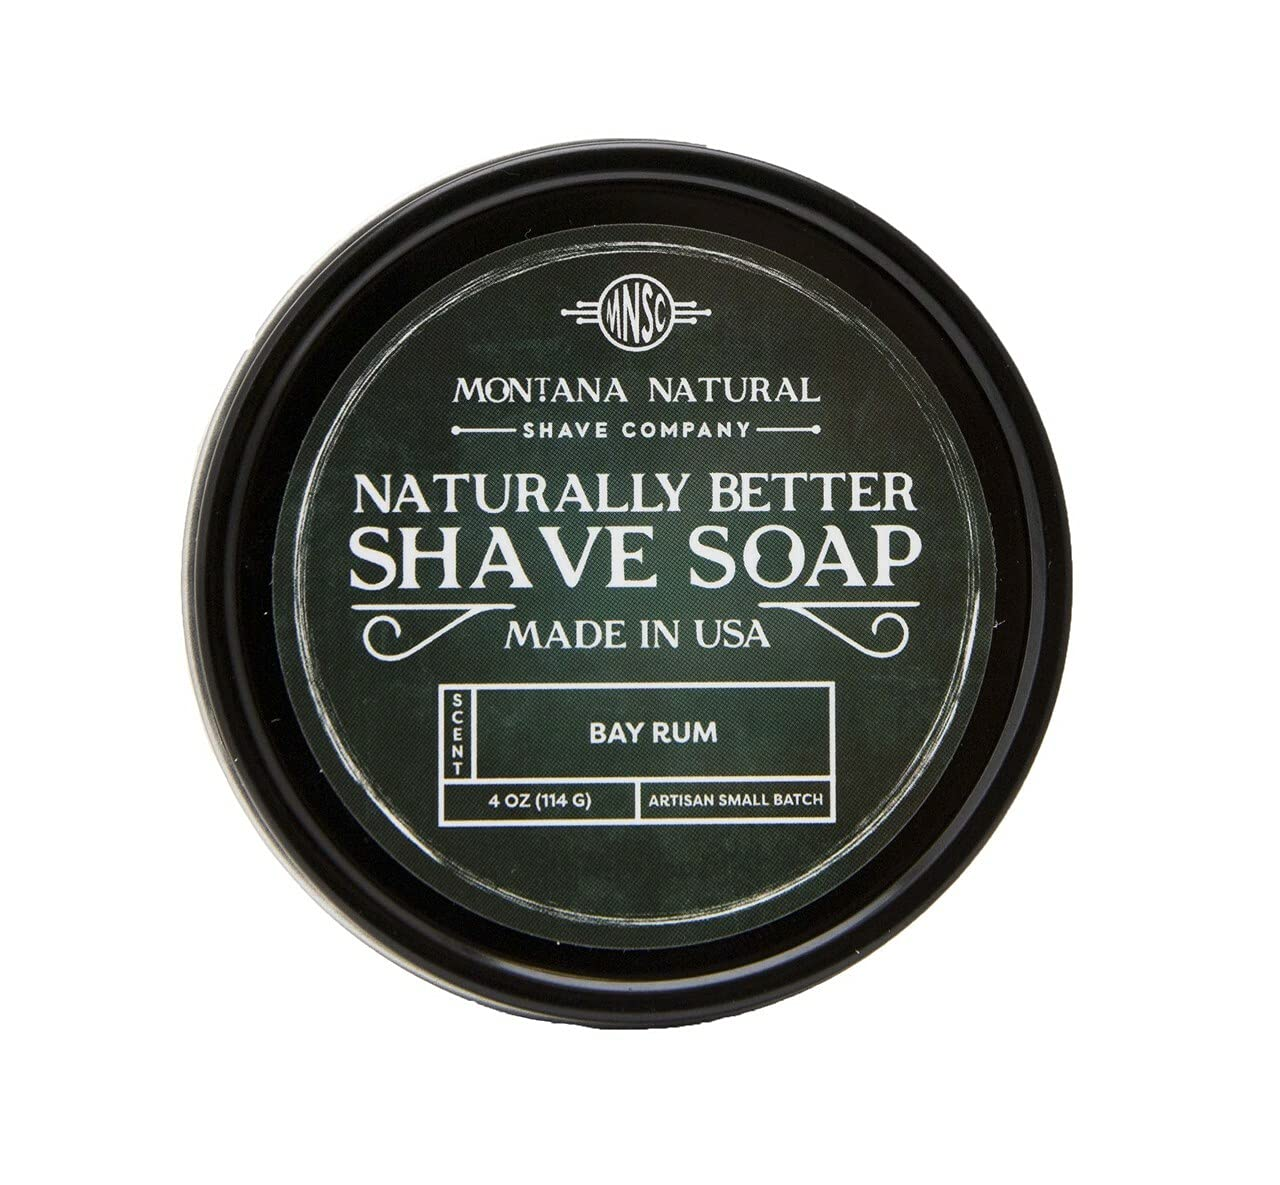 MNSC Bay Rum Artisan Small Batch Bett for Boston Mall Shave Many popular brands a Soap Naturally